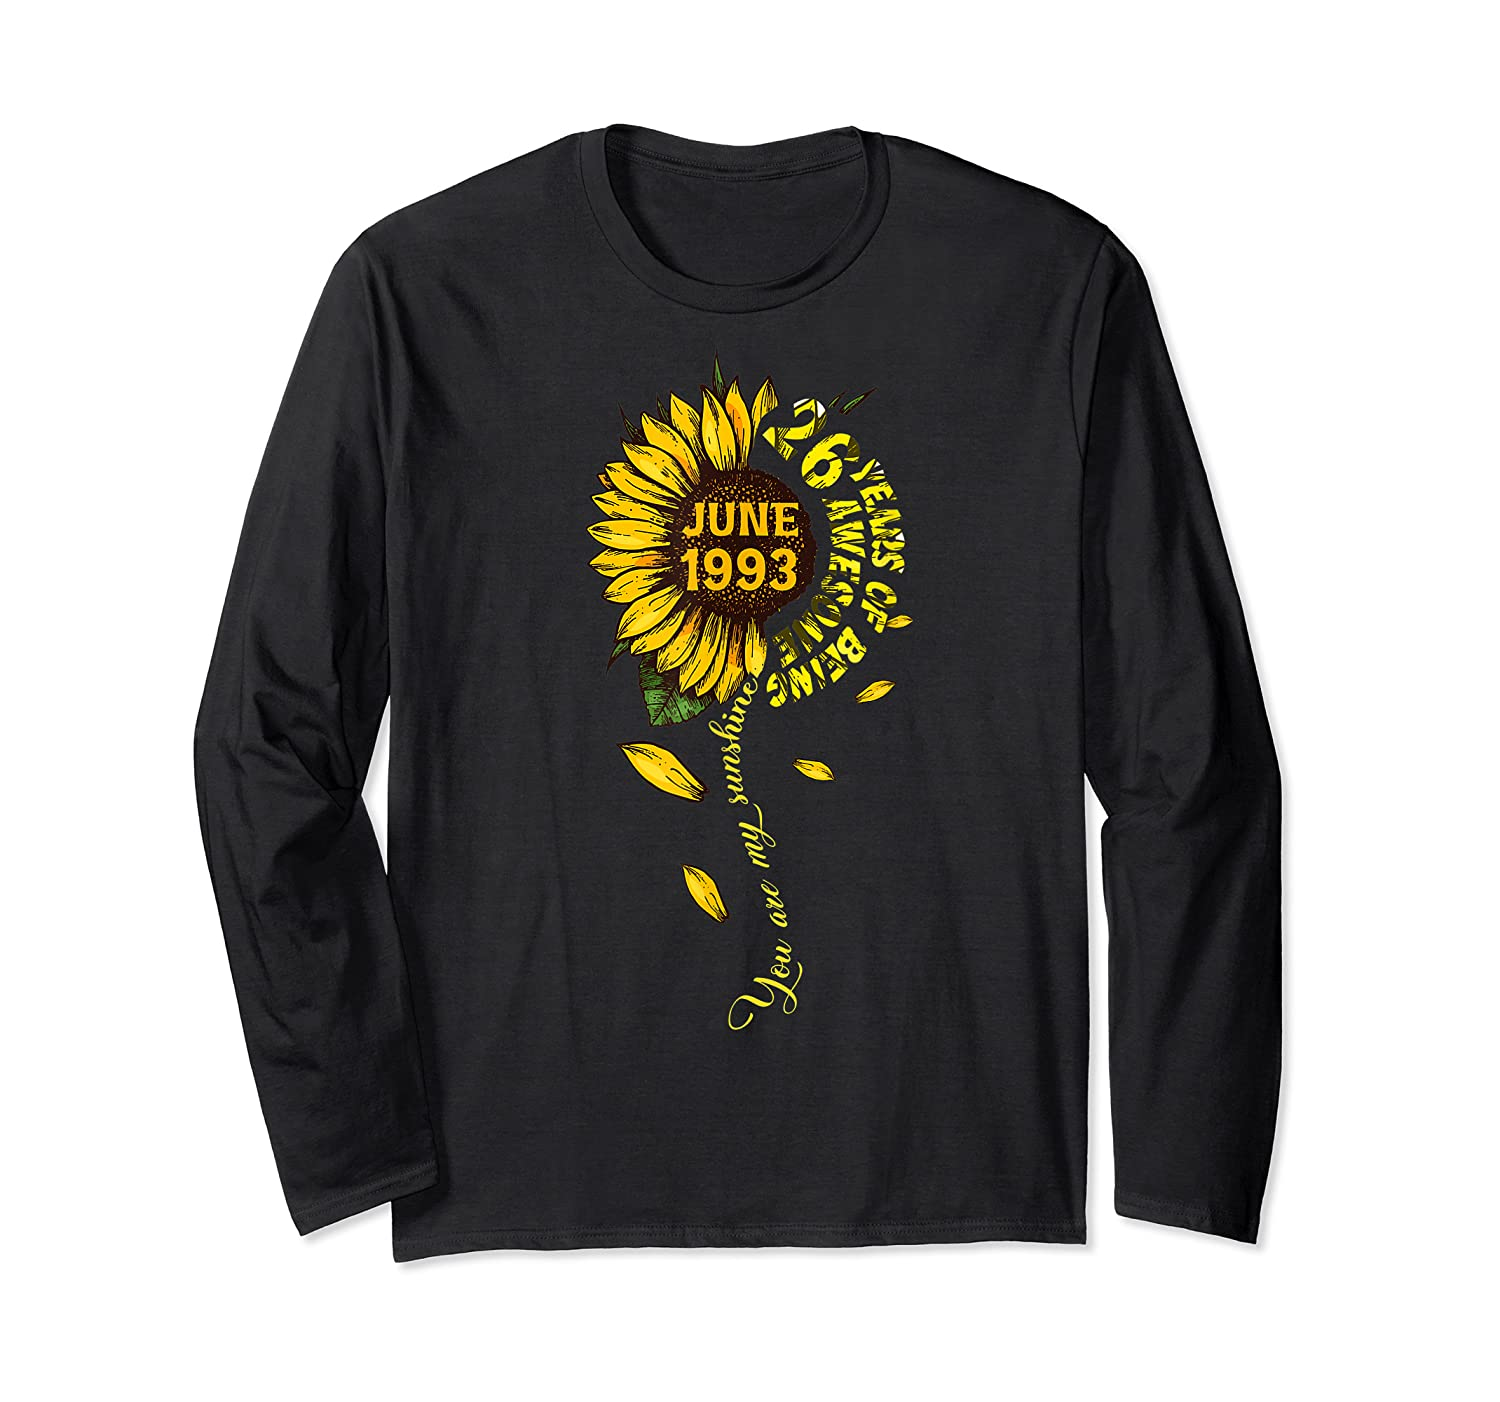 June 1993 26 Years Of Being Awesome Mix Sunflower Shirts Long Sleeve T-shirt